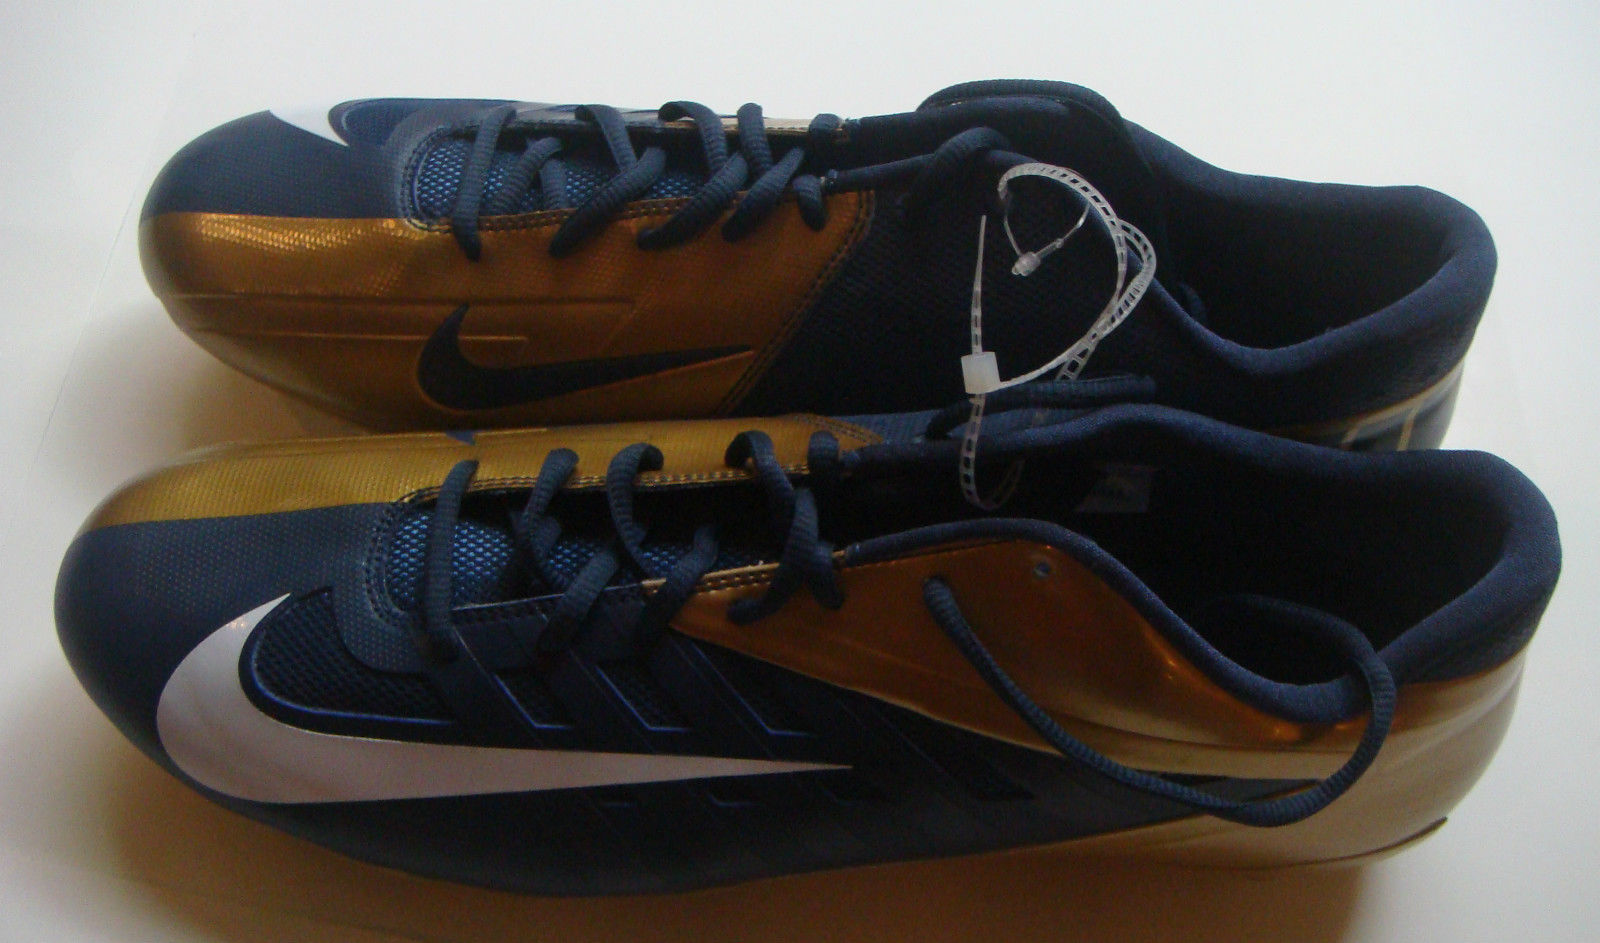 NEW Nike Vapor Pro Elite Navy Blue Gold Football Size 16 Cleats